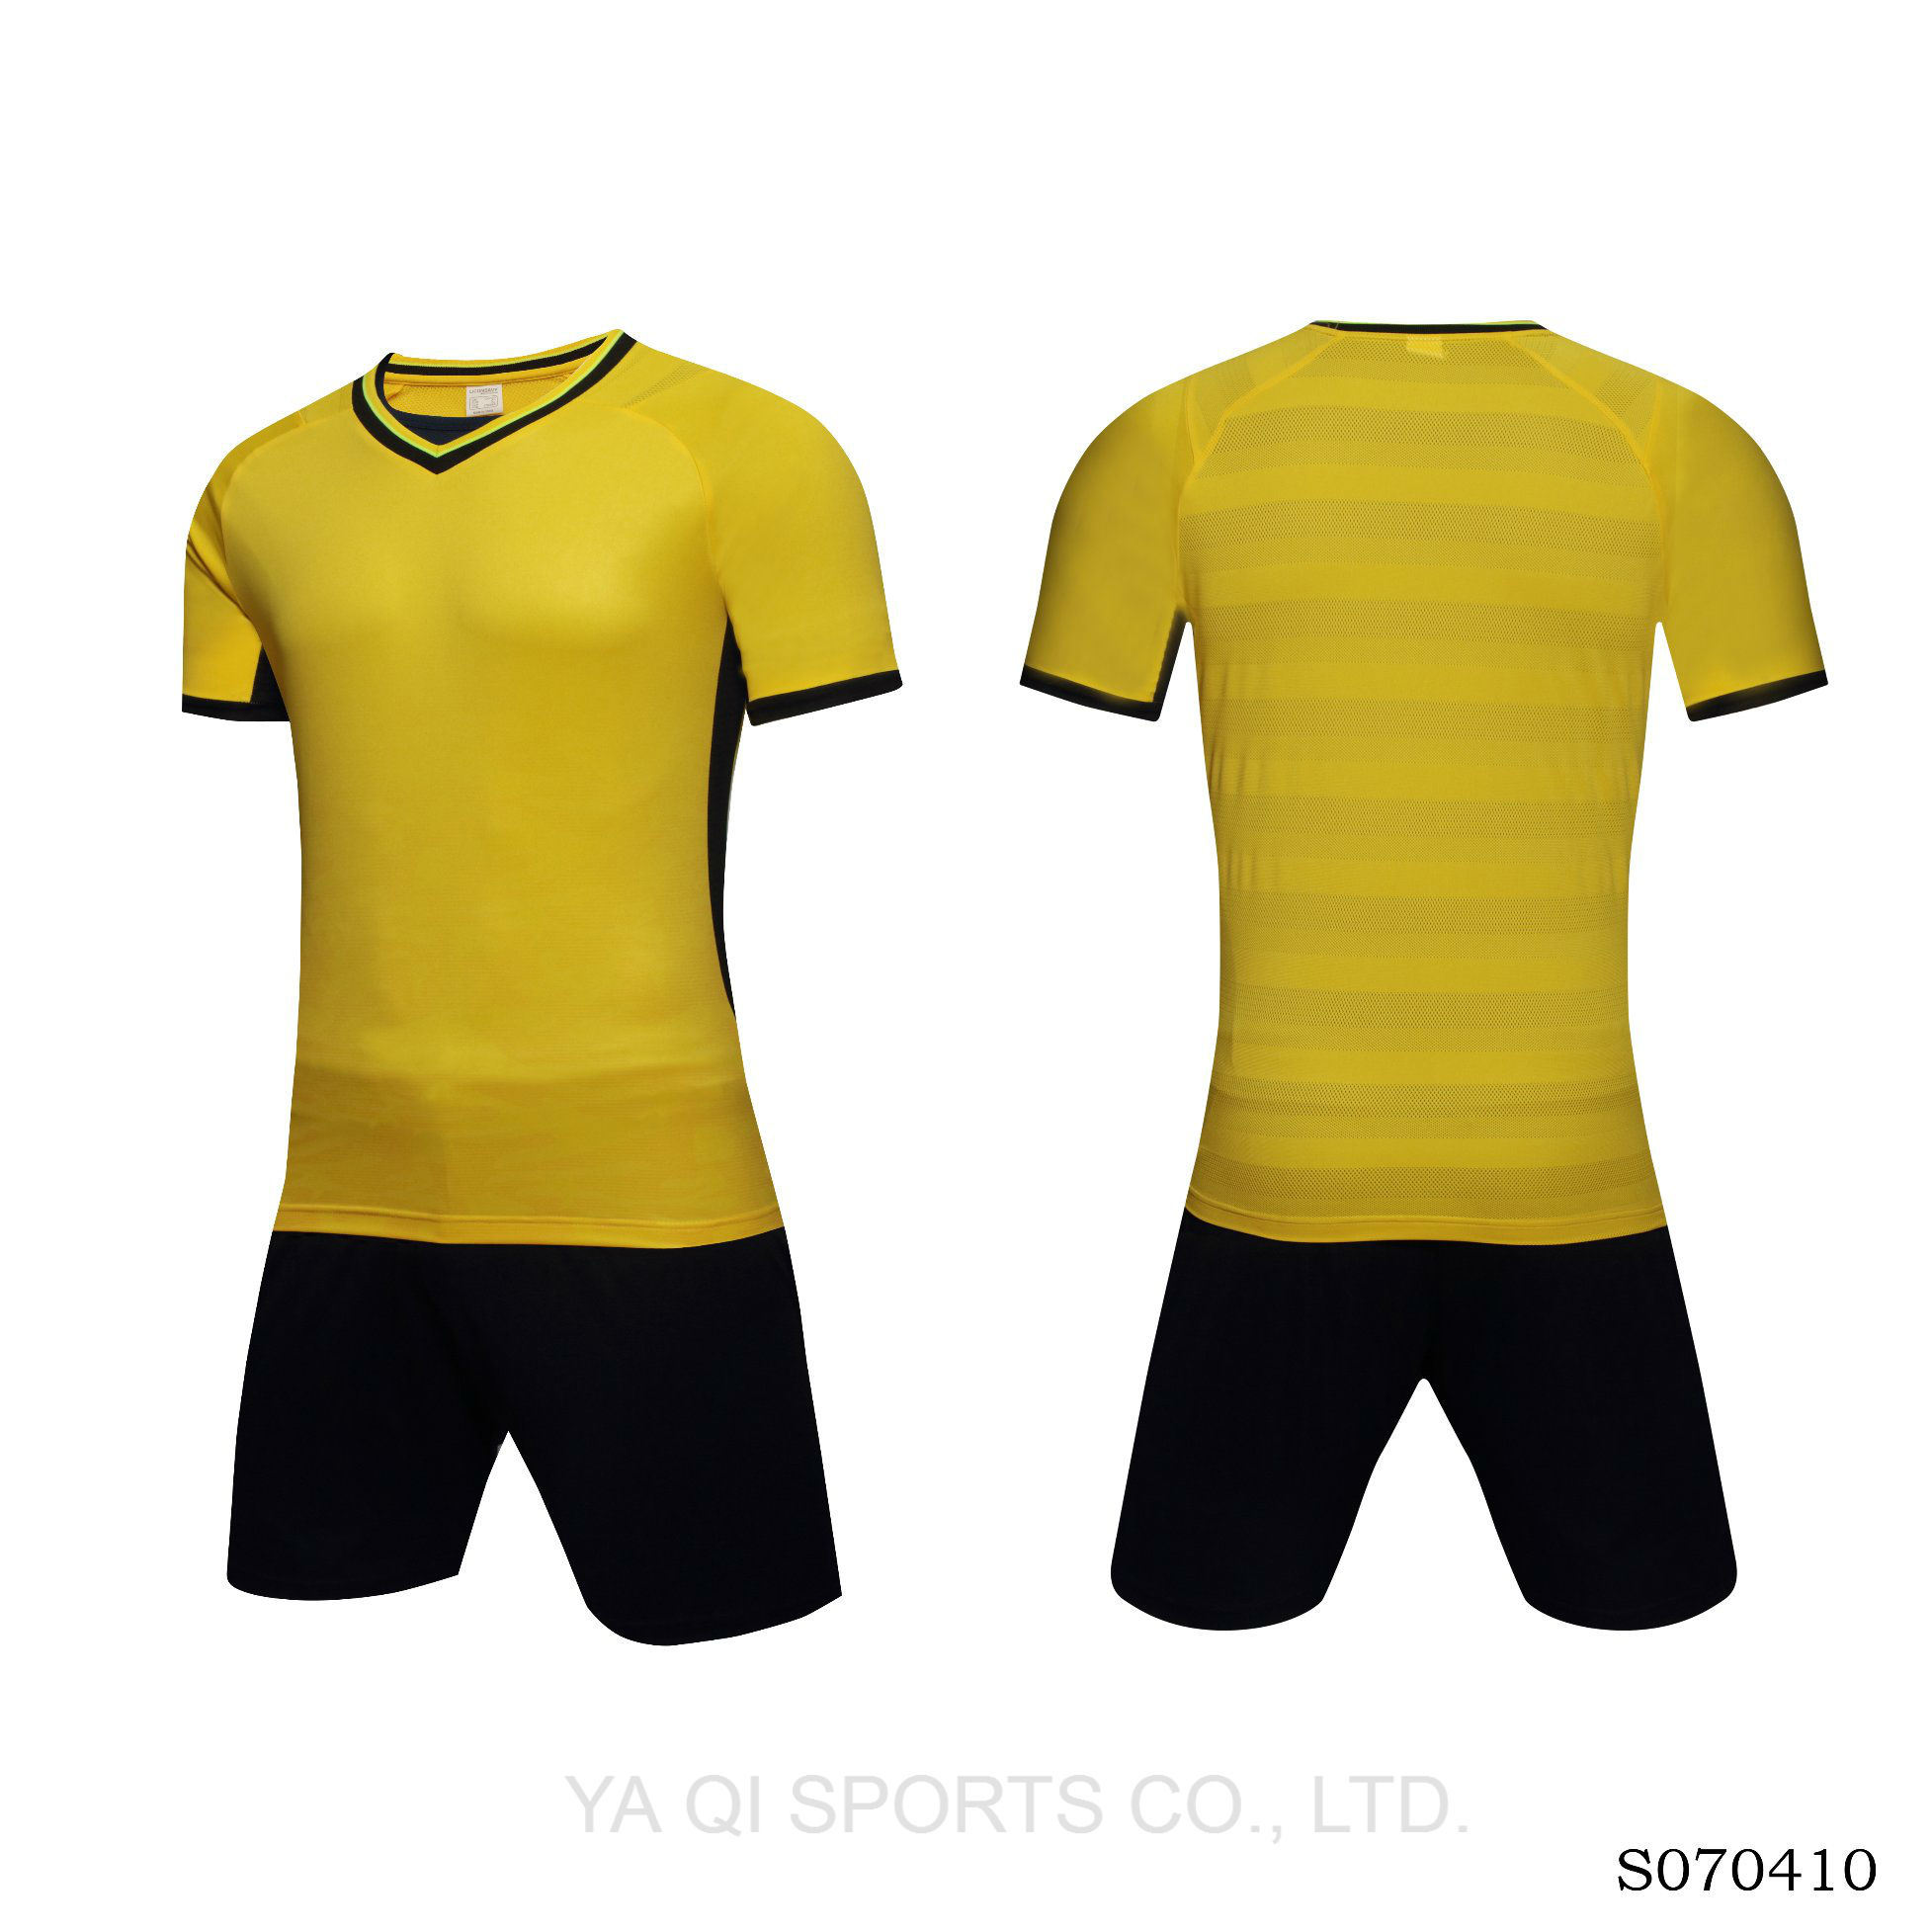 c7ad23d9db4 China Customized OEM Your Logo Football Uniform Blank Football Jersey Soccer  - China Soccer Uniforms